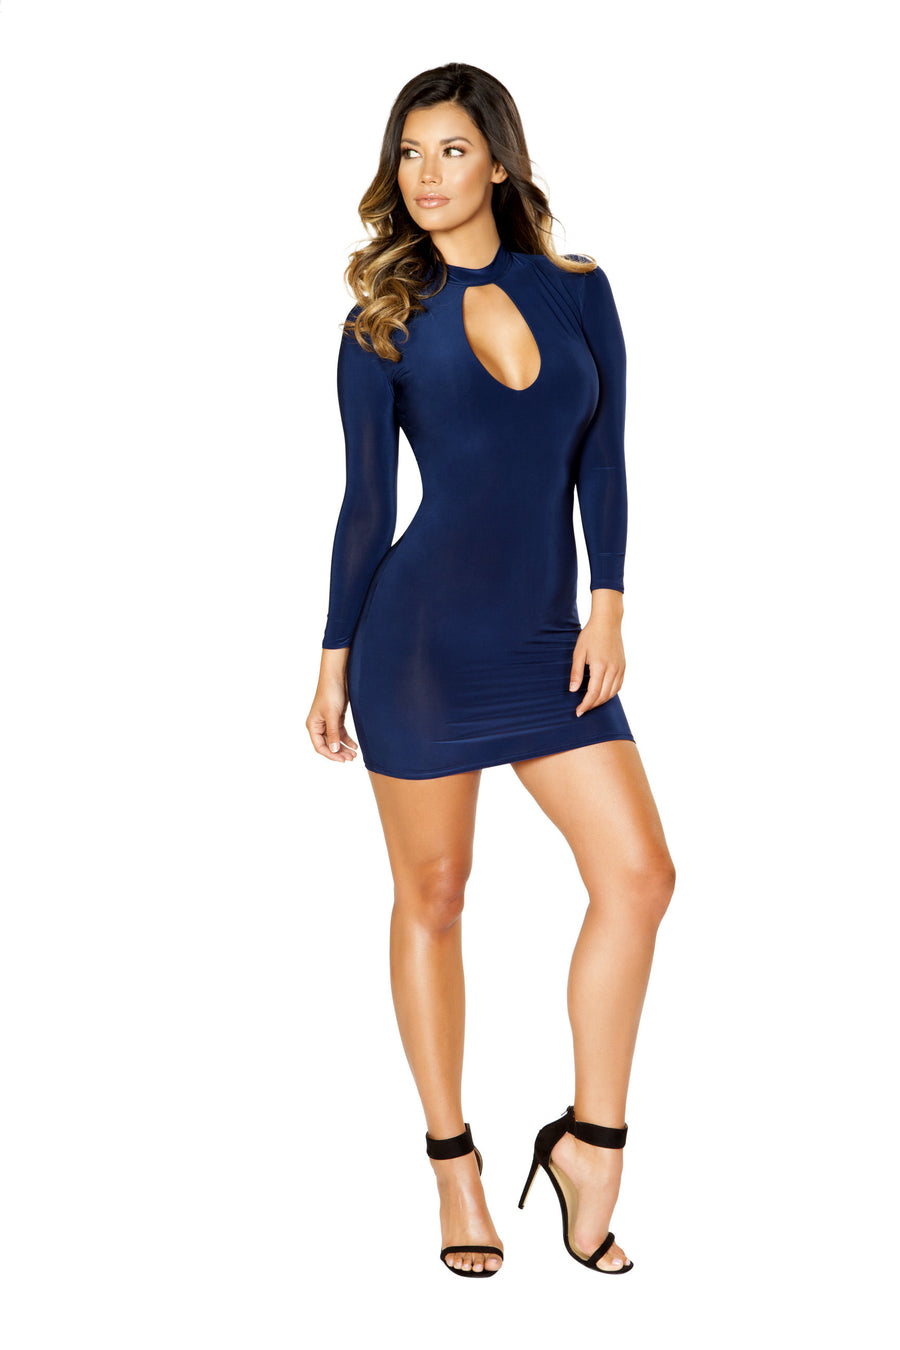 Long Sleeve Dress with Cutout Detail - Mini Dresses, Roma - YourLamode